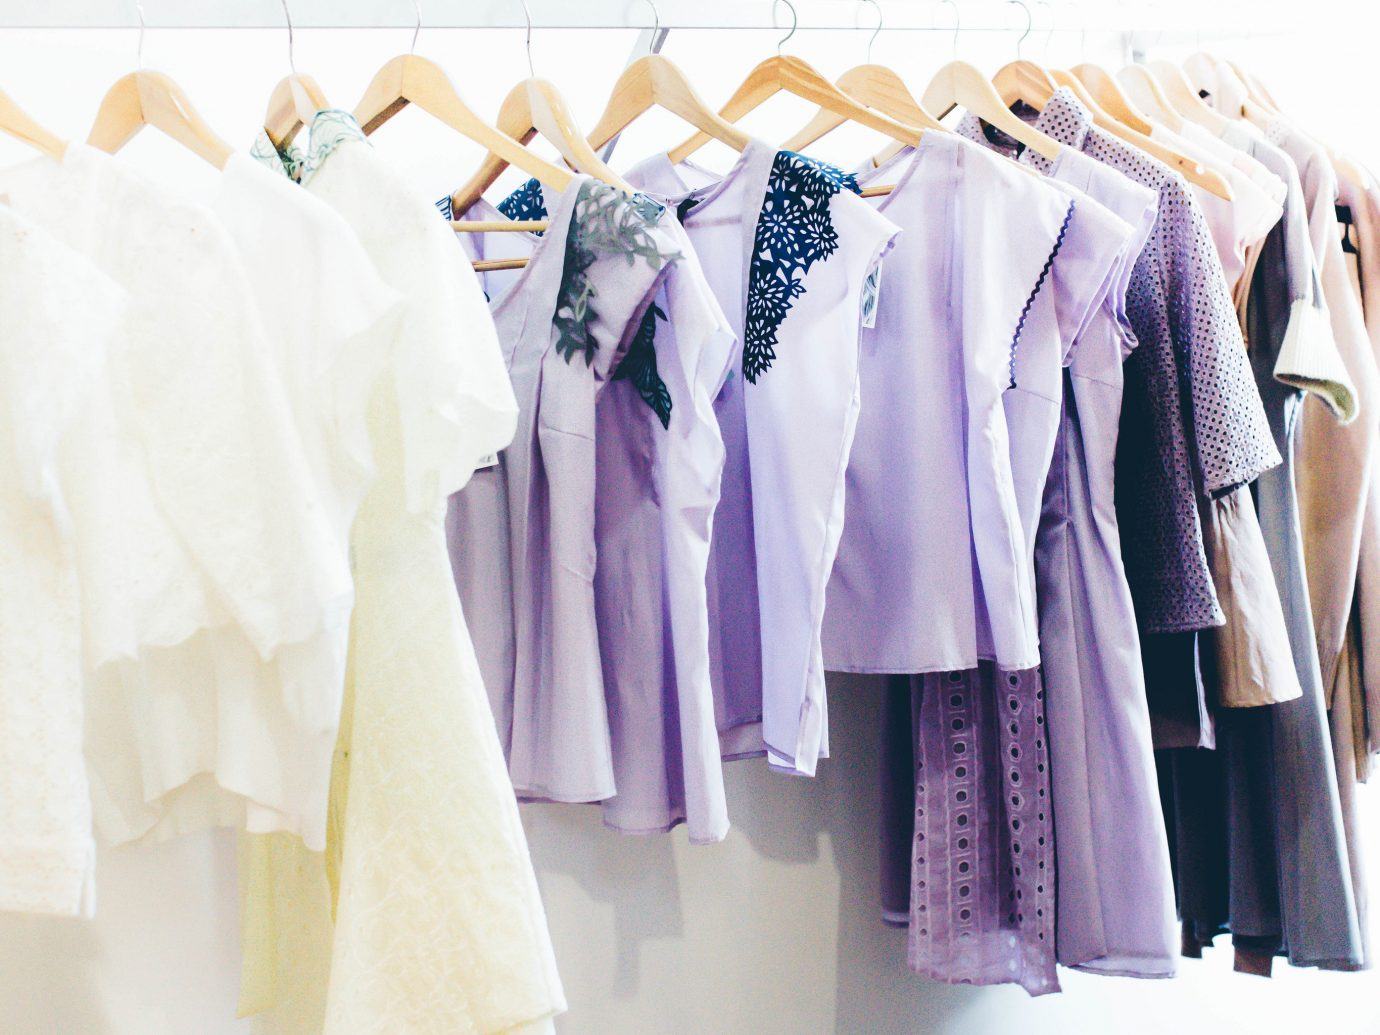 Trip Ideas clothing room dress outerwear gown towel spring cloth rack clothes textile several